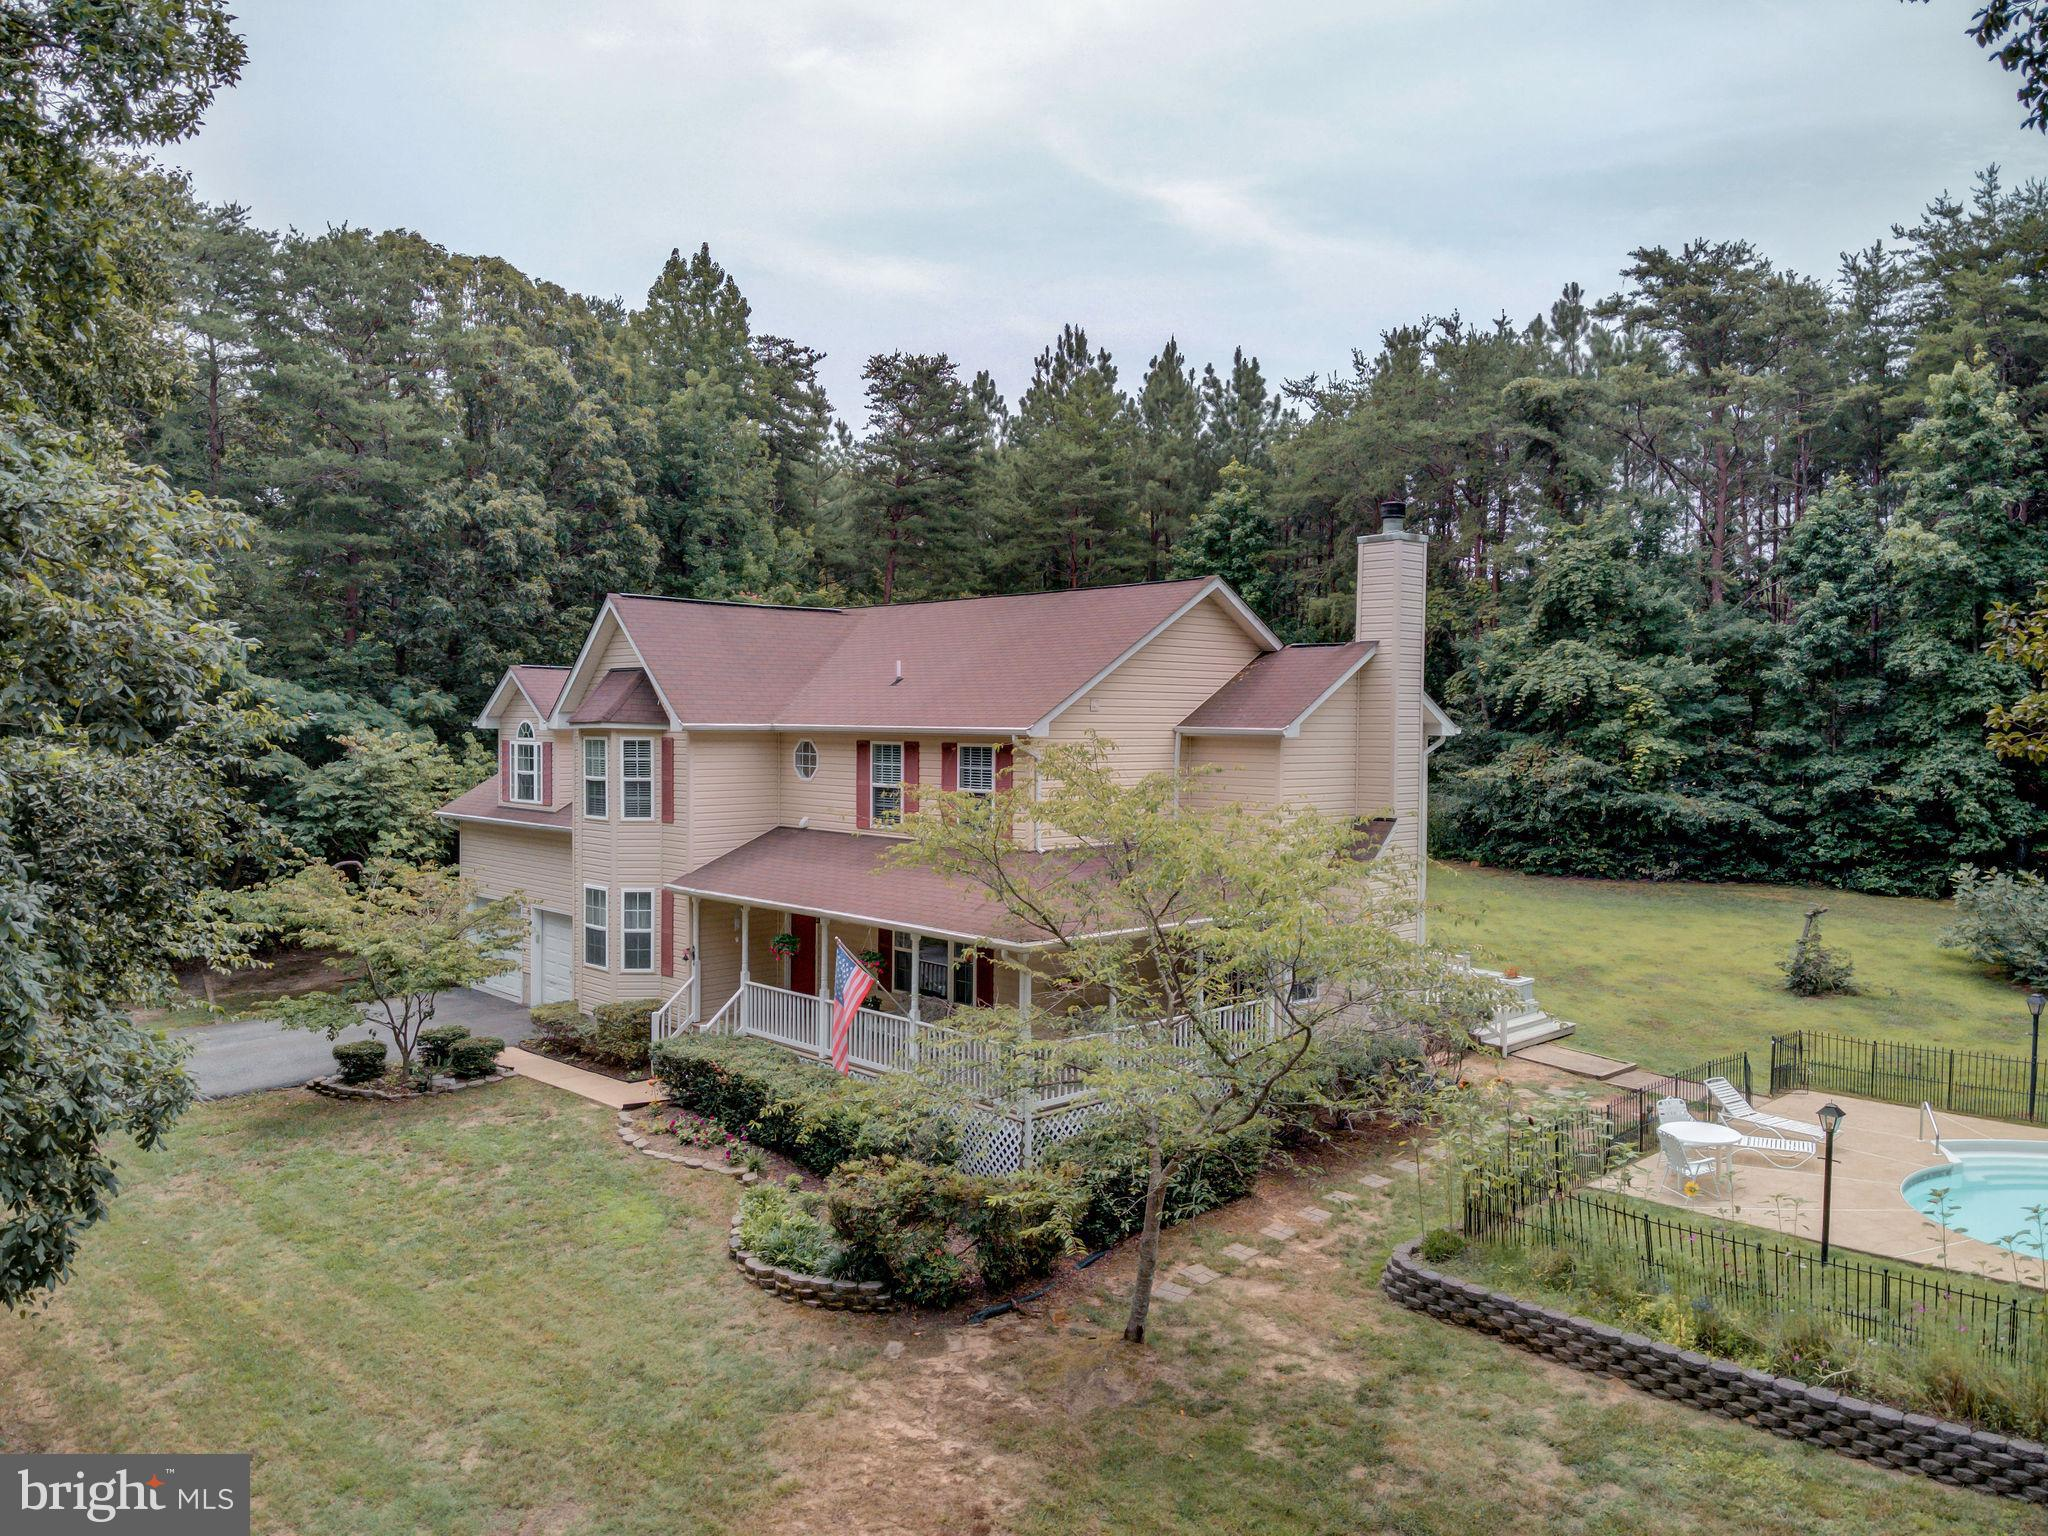 Well maintained by Original Owners-Many Upgrades/Updates-3 Finished Levels-3,600 Total Finished Sq F